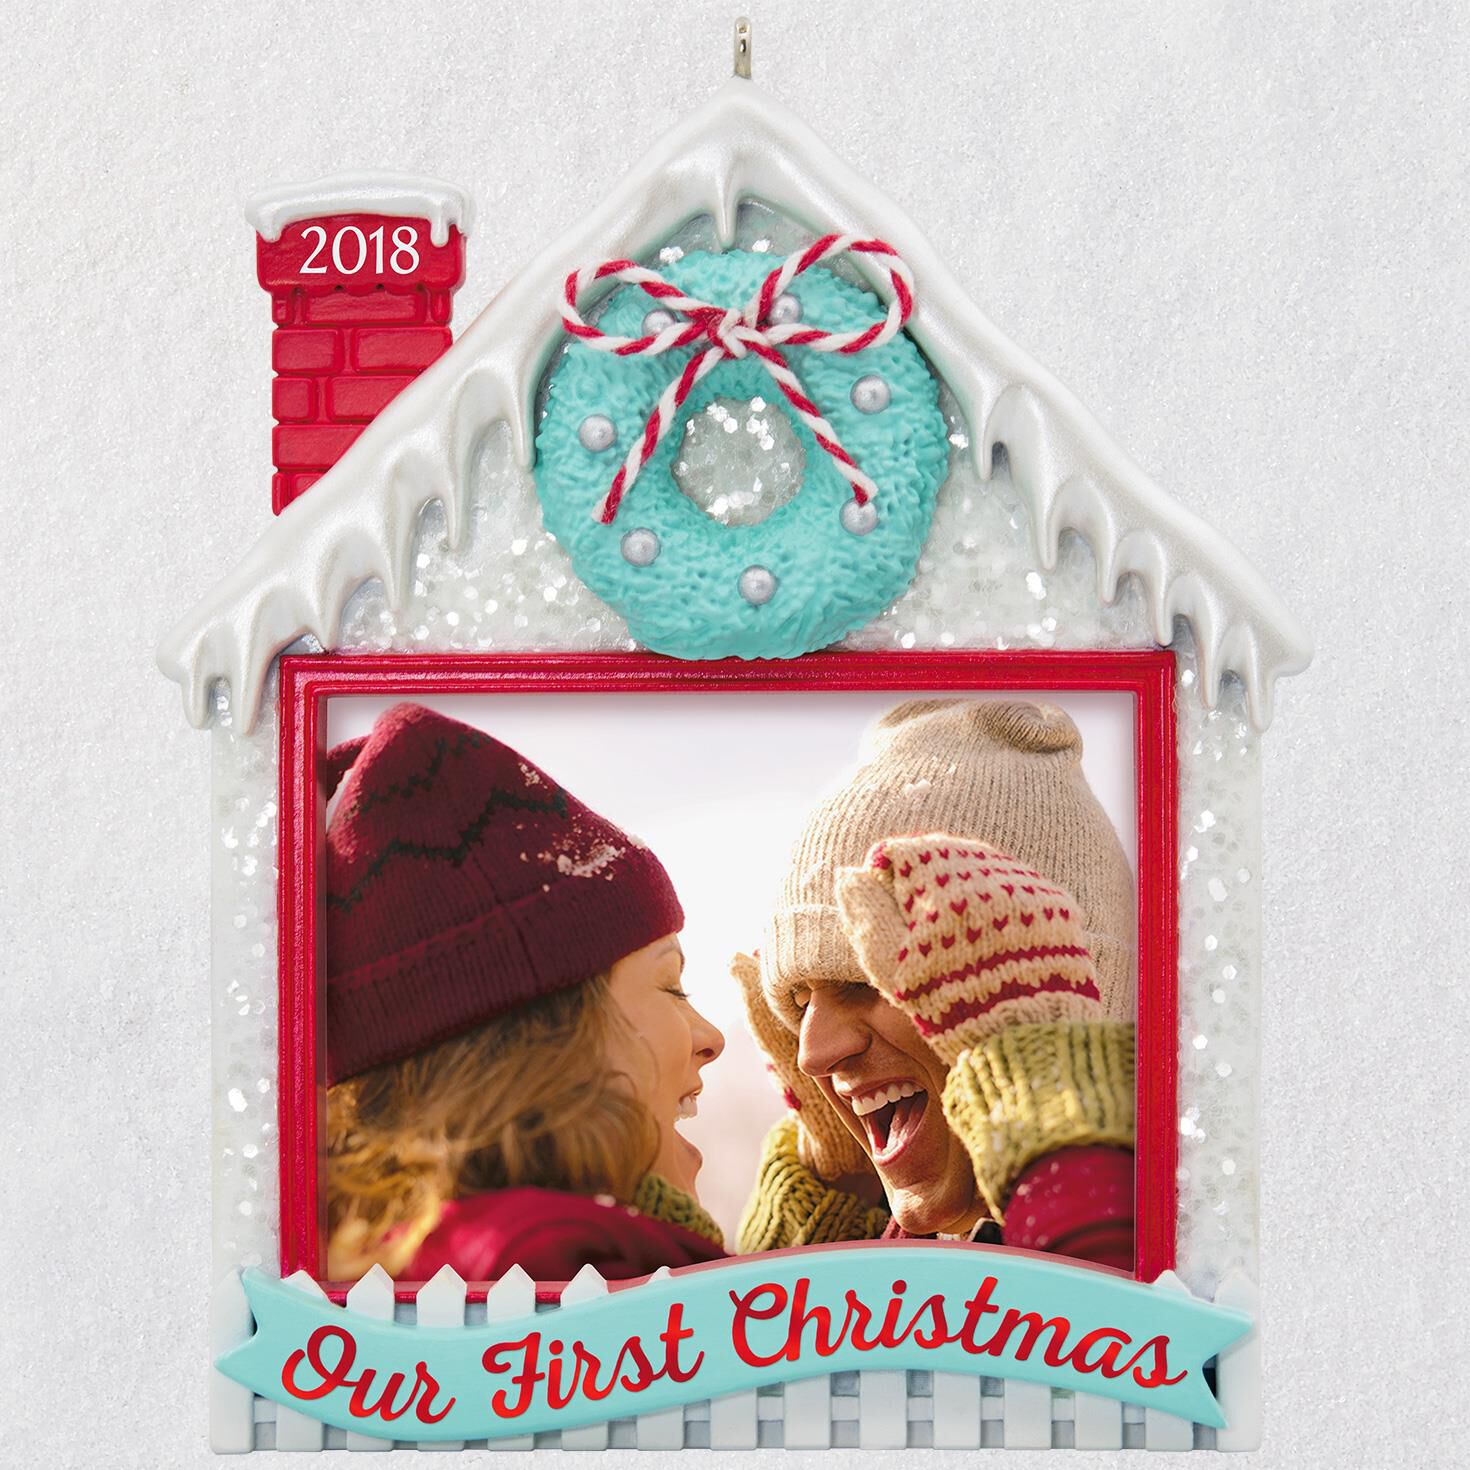 Hallmark Our First Christmas Ornament.Our First Christmas 2018 Photo Ornament